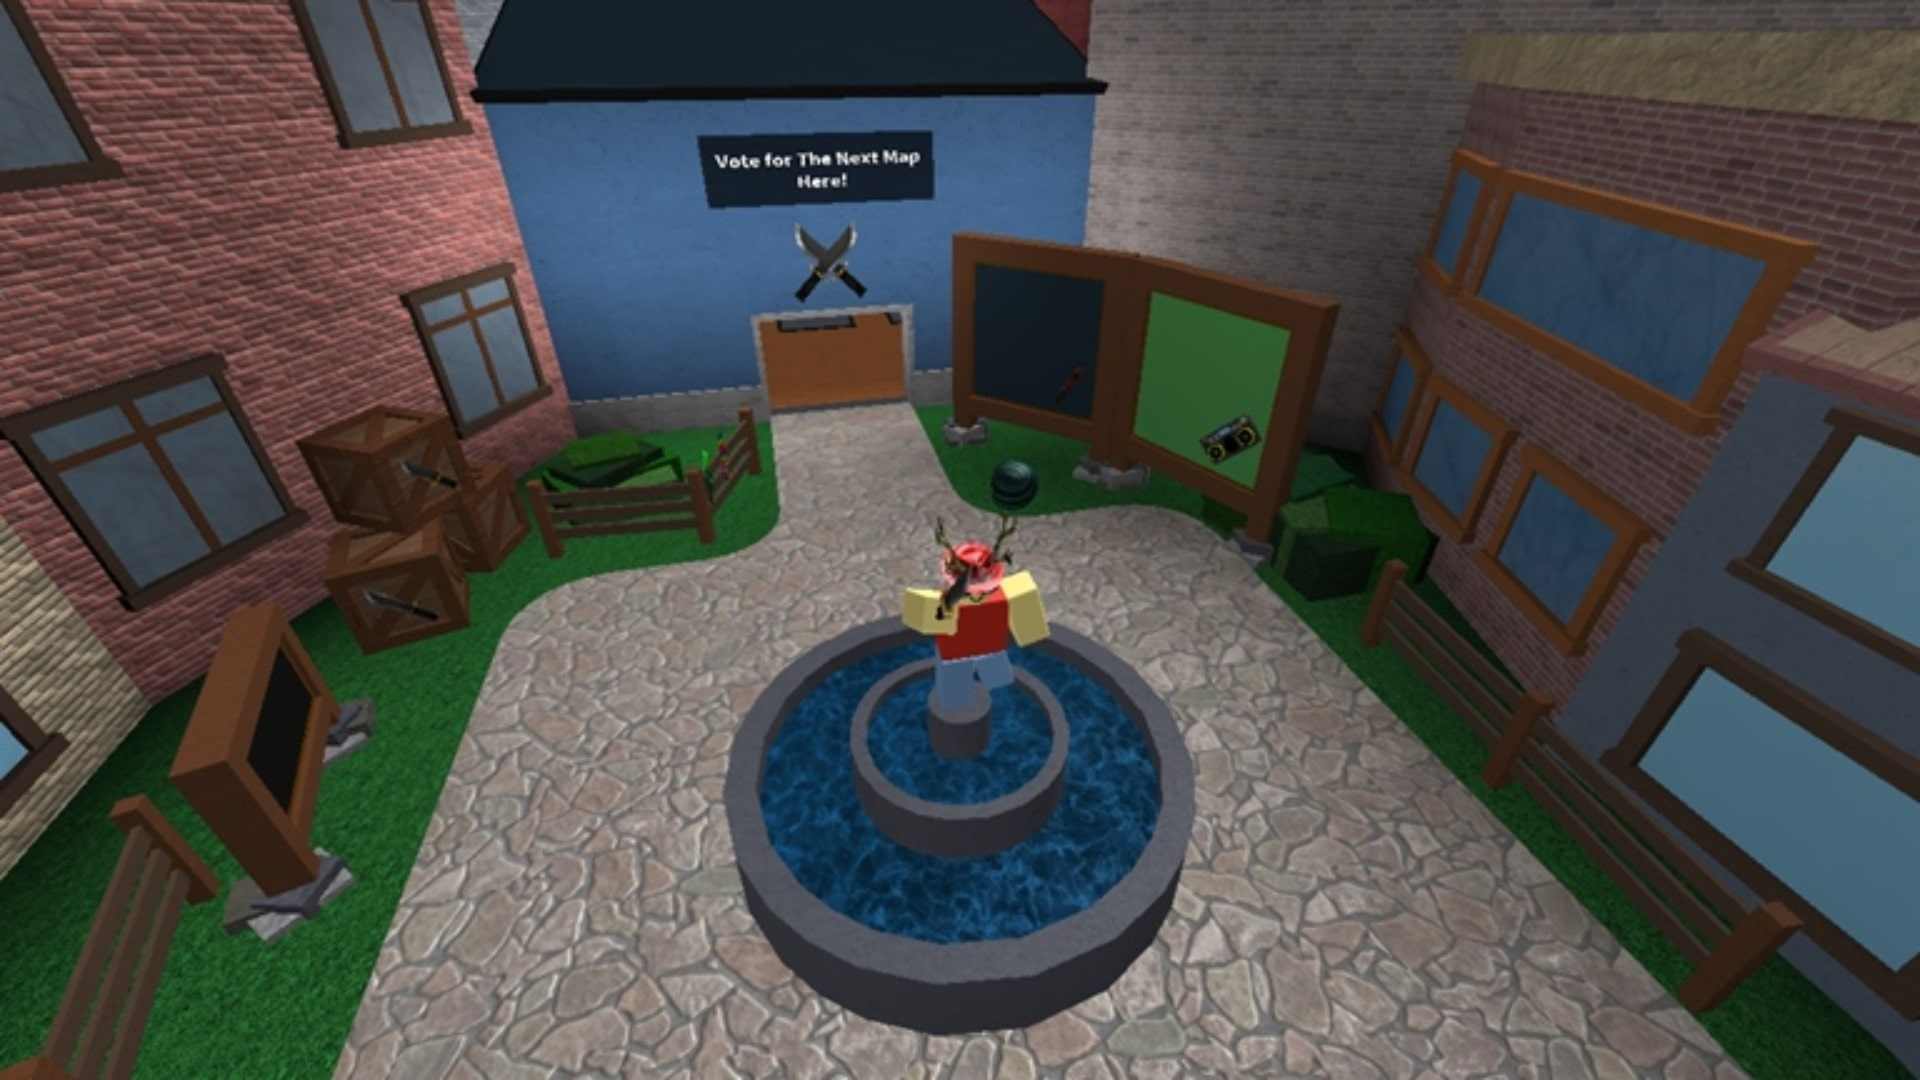 Getting Flames Given Free Seer Roblox Murder Mystery 2 Gameplay - Discuss Everything About Murder Mystery 2 Wiki Fandom